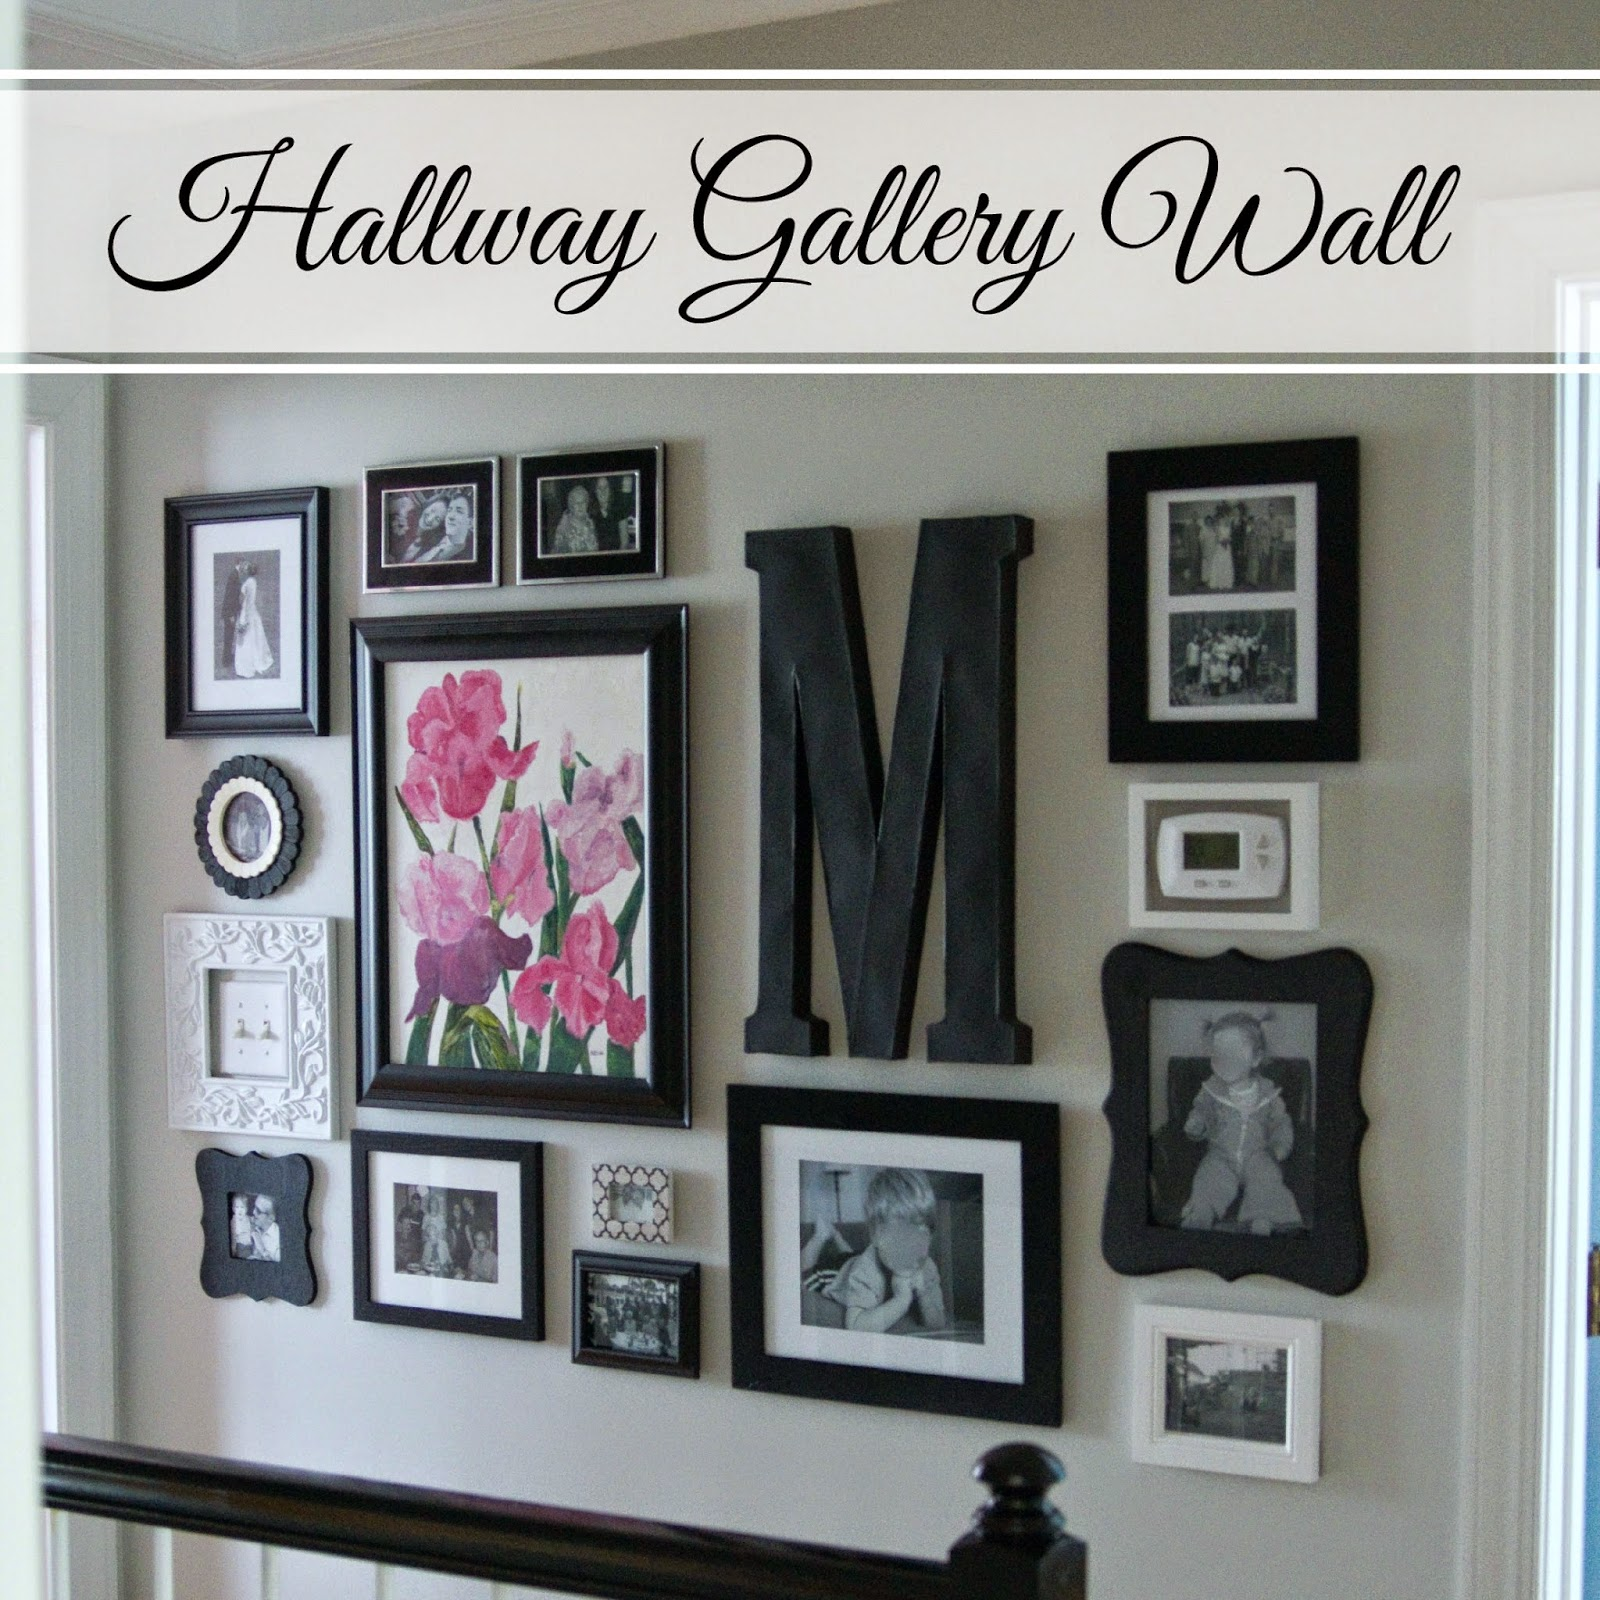 Hallway gallery wall for Wall decoration ideas pinterest